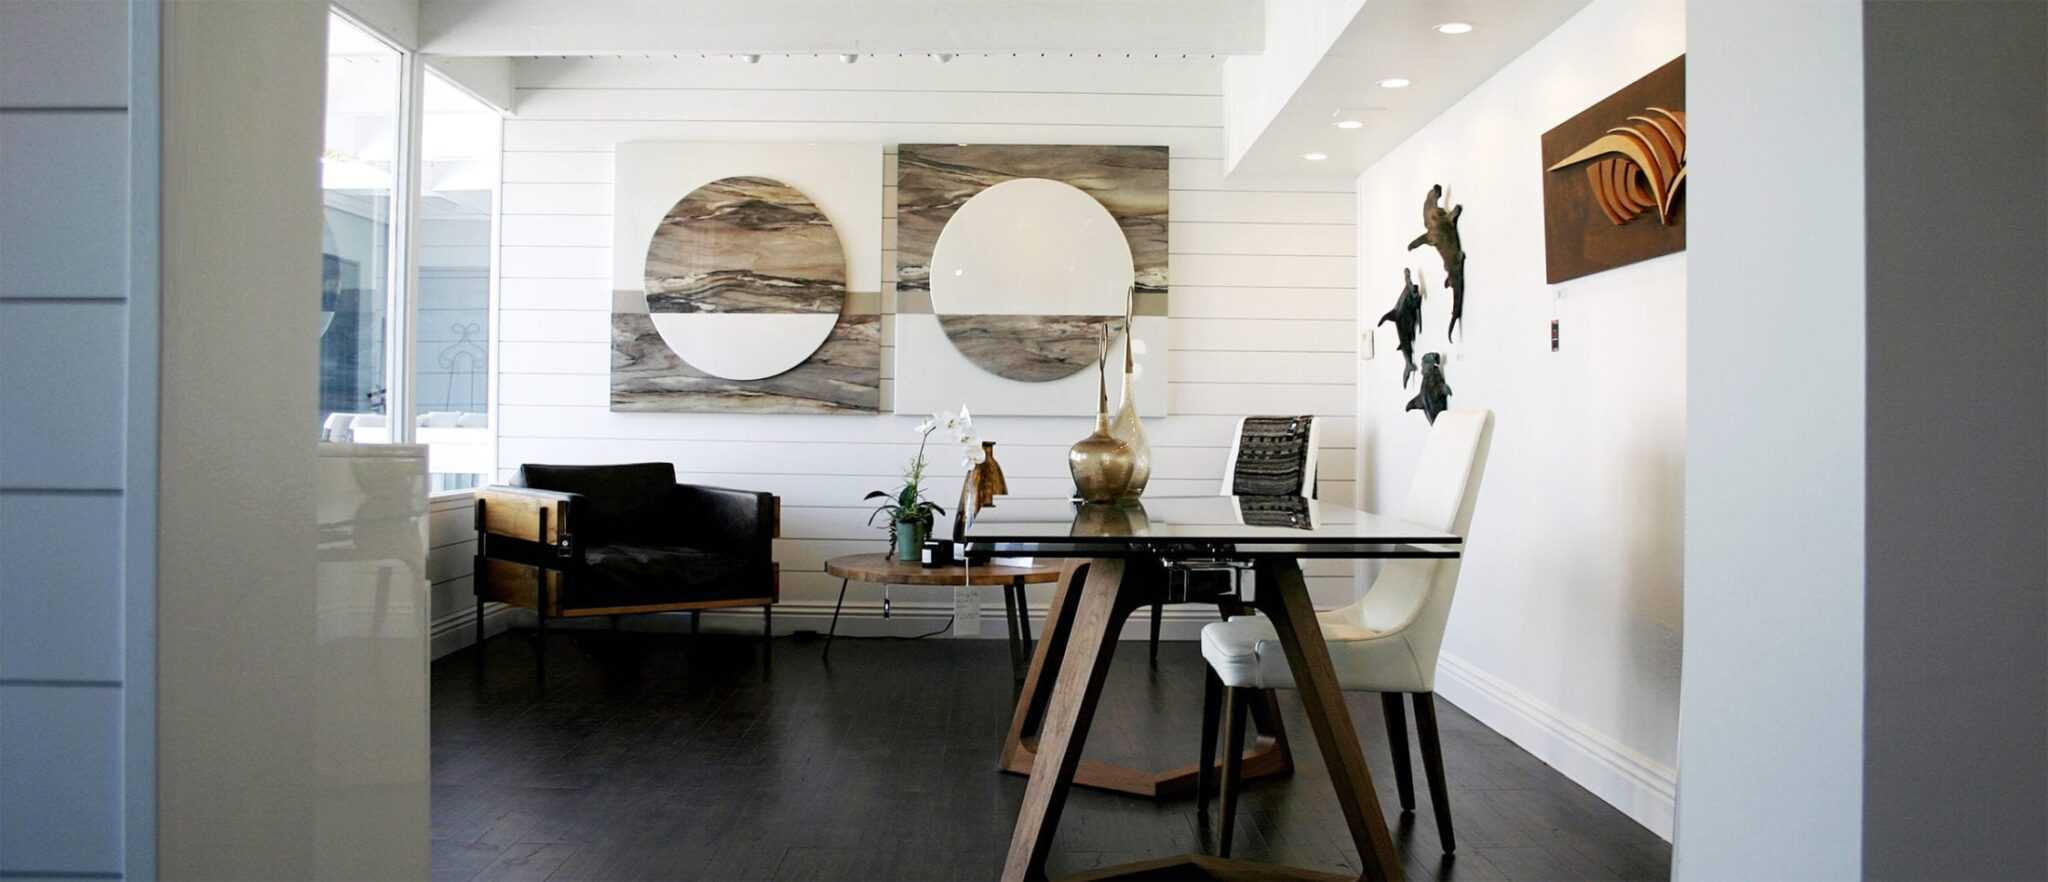 Laguna Beach Art Galleries - Coastal Contemporary Art - ocean gallery